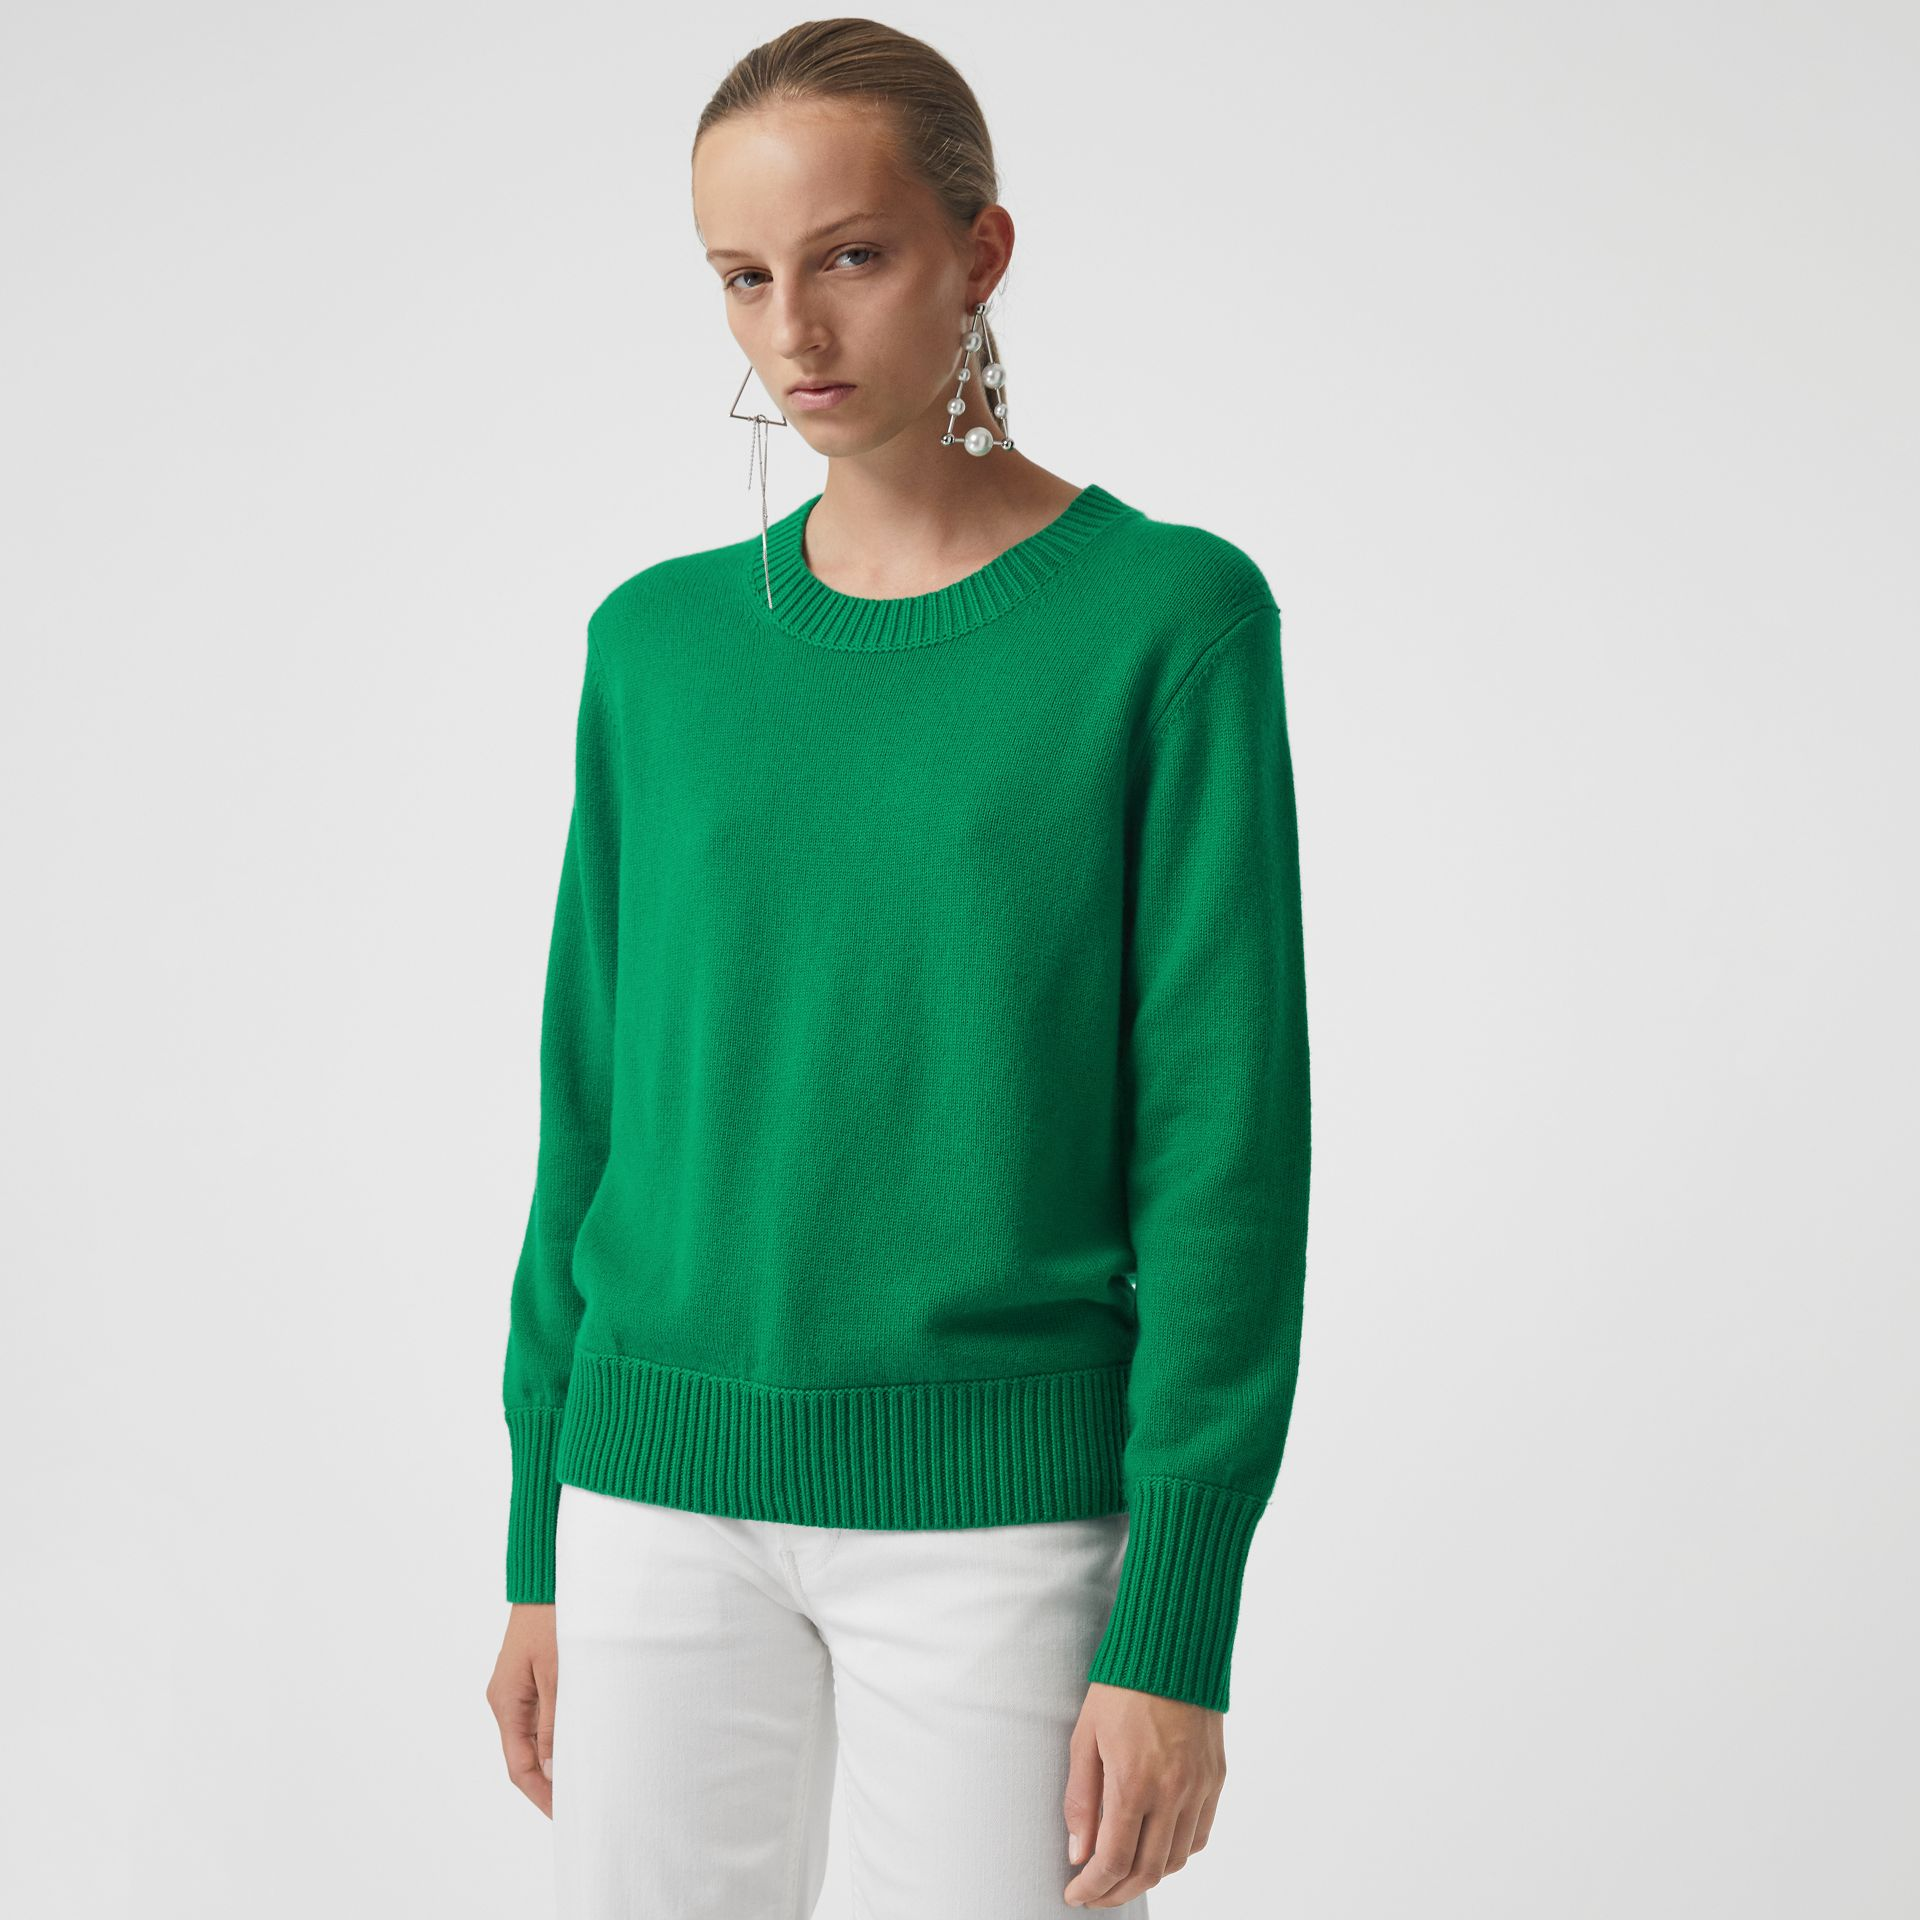 Archive Logo Appliqué Cashmere Sweater in Vibrant Green - Women | Burberry Australia - gallery image 0